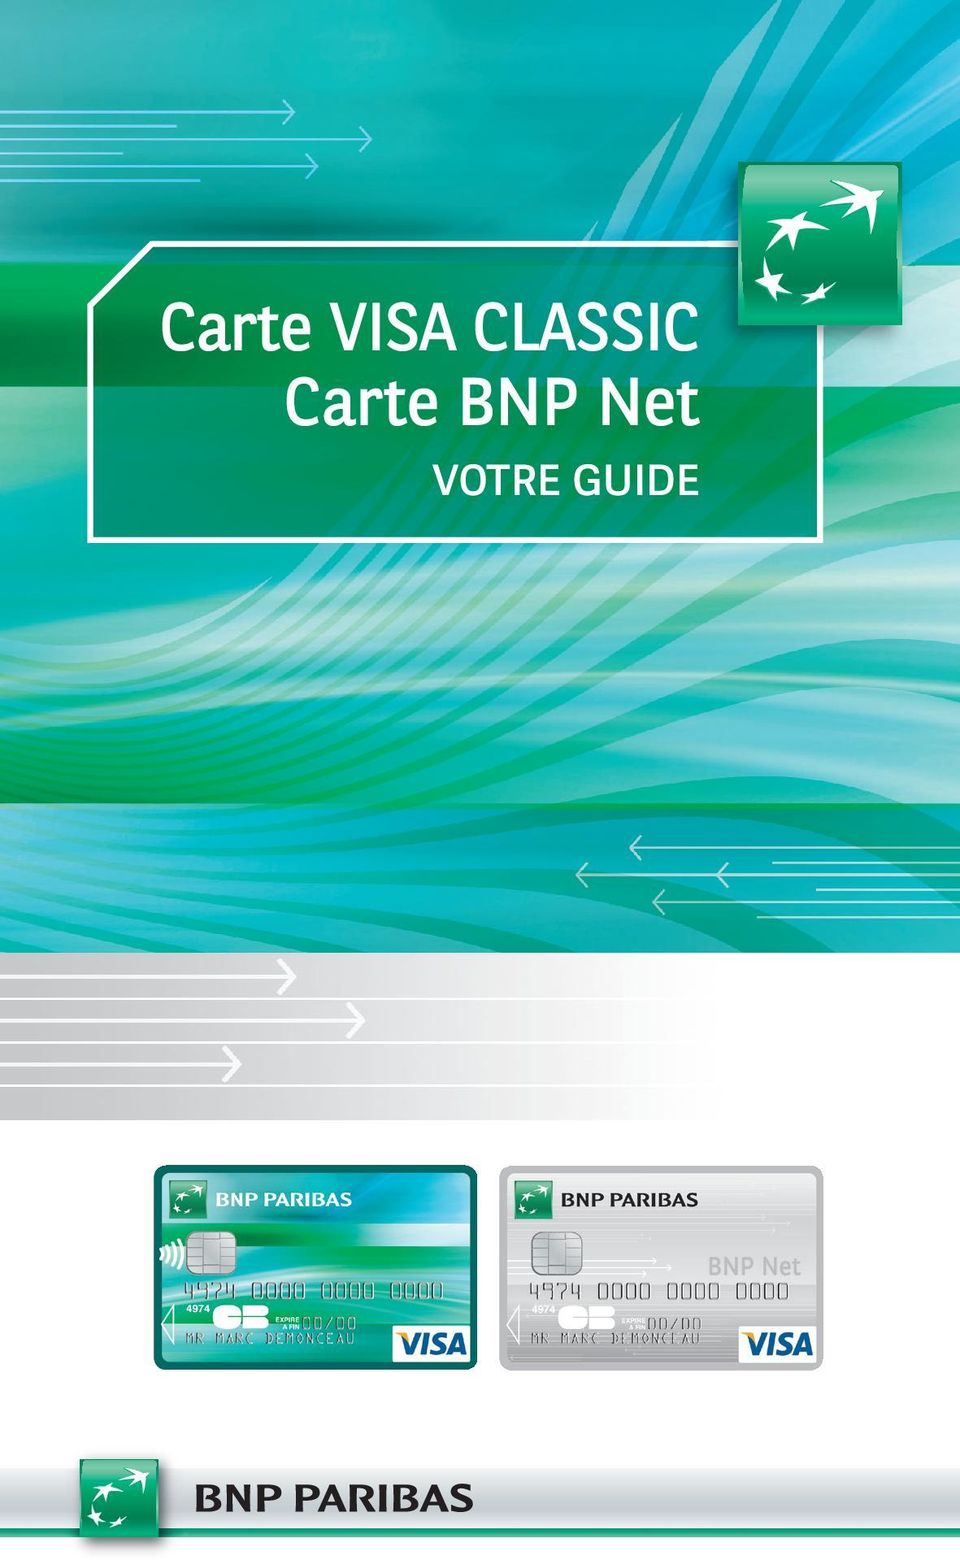 carte visa classic carte bnp net votre guide pdf. Black Bedroom Furniture Sets. Home Design Ideas